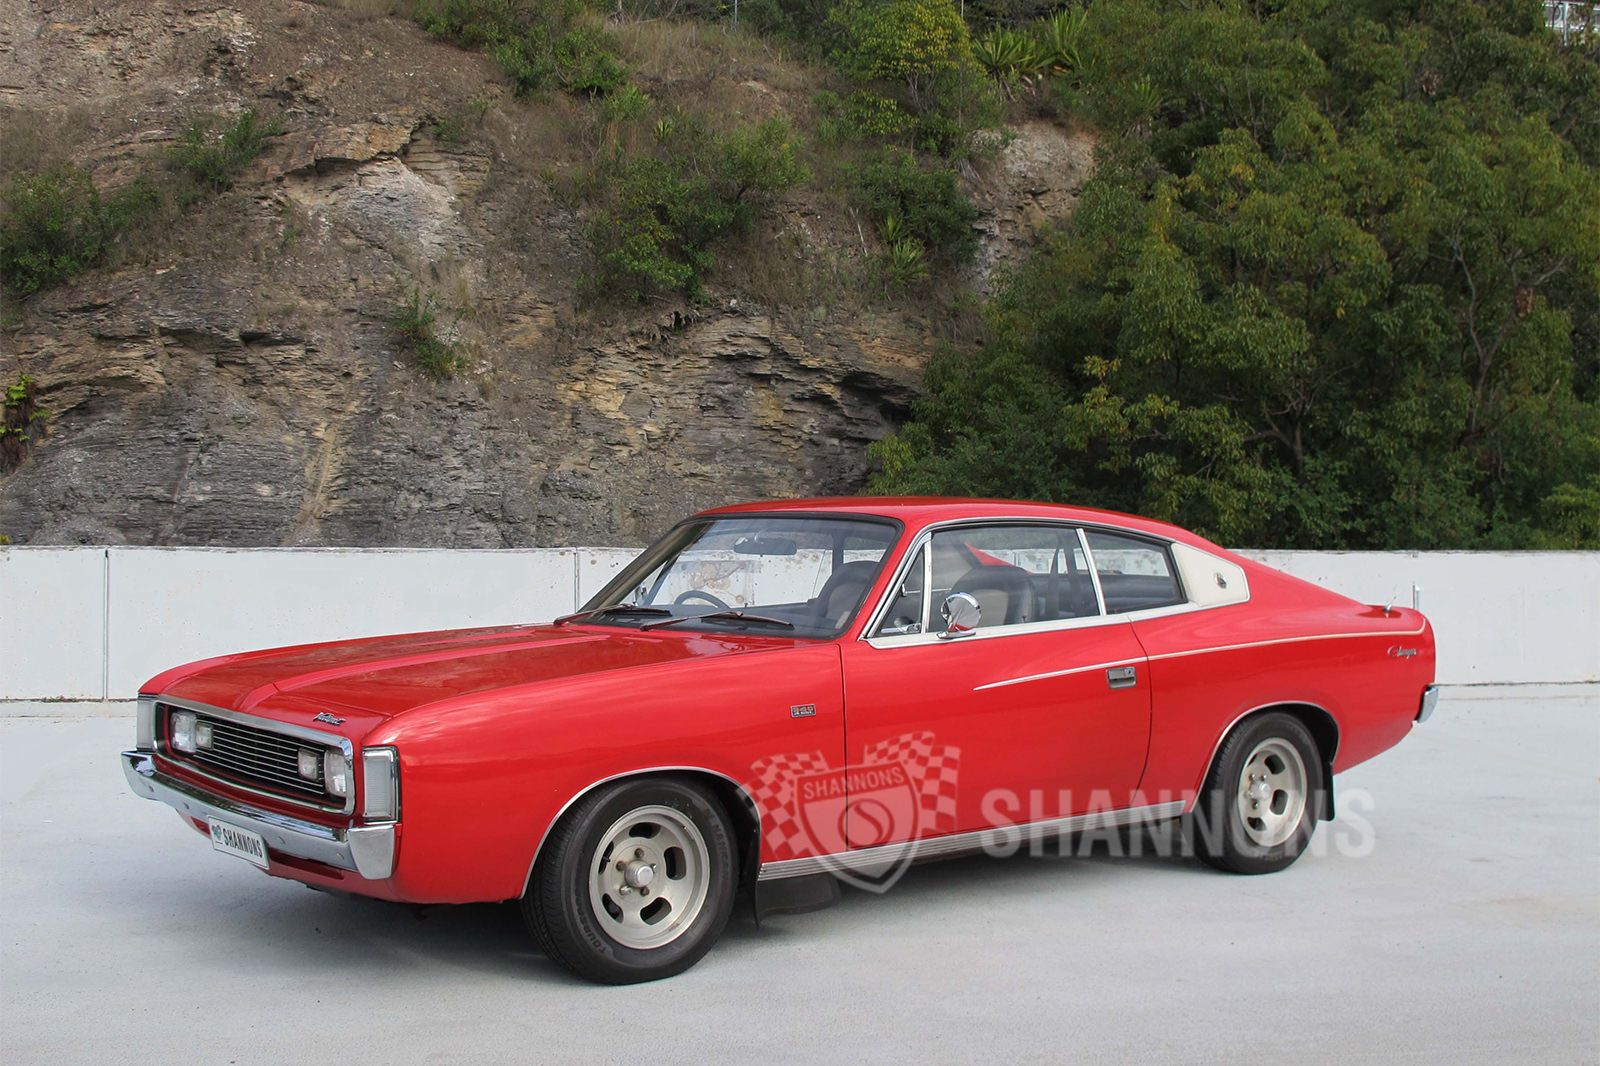 1972 Chrysler VH Valiant Charger